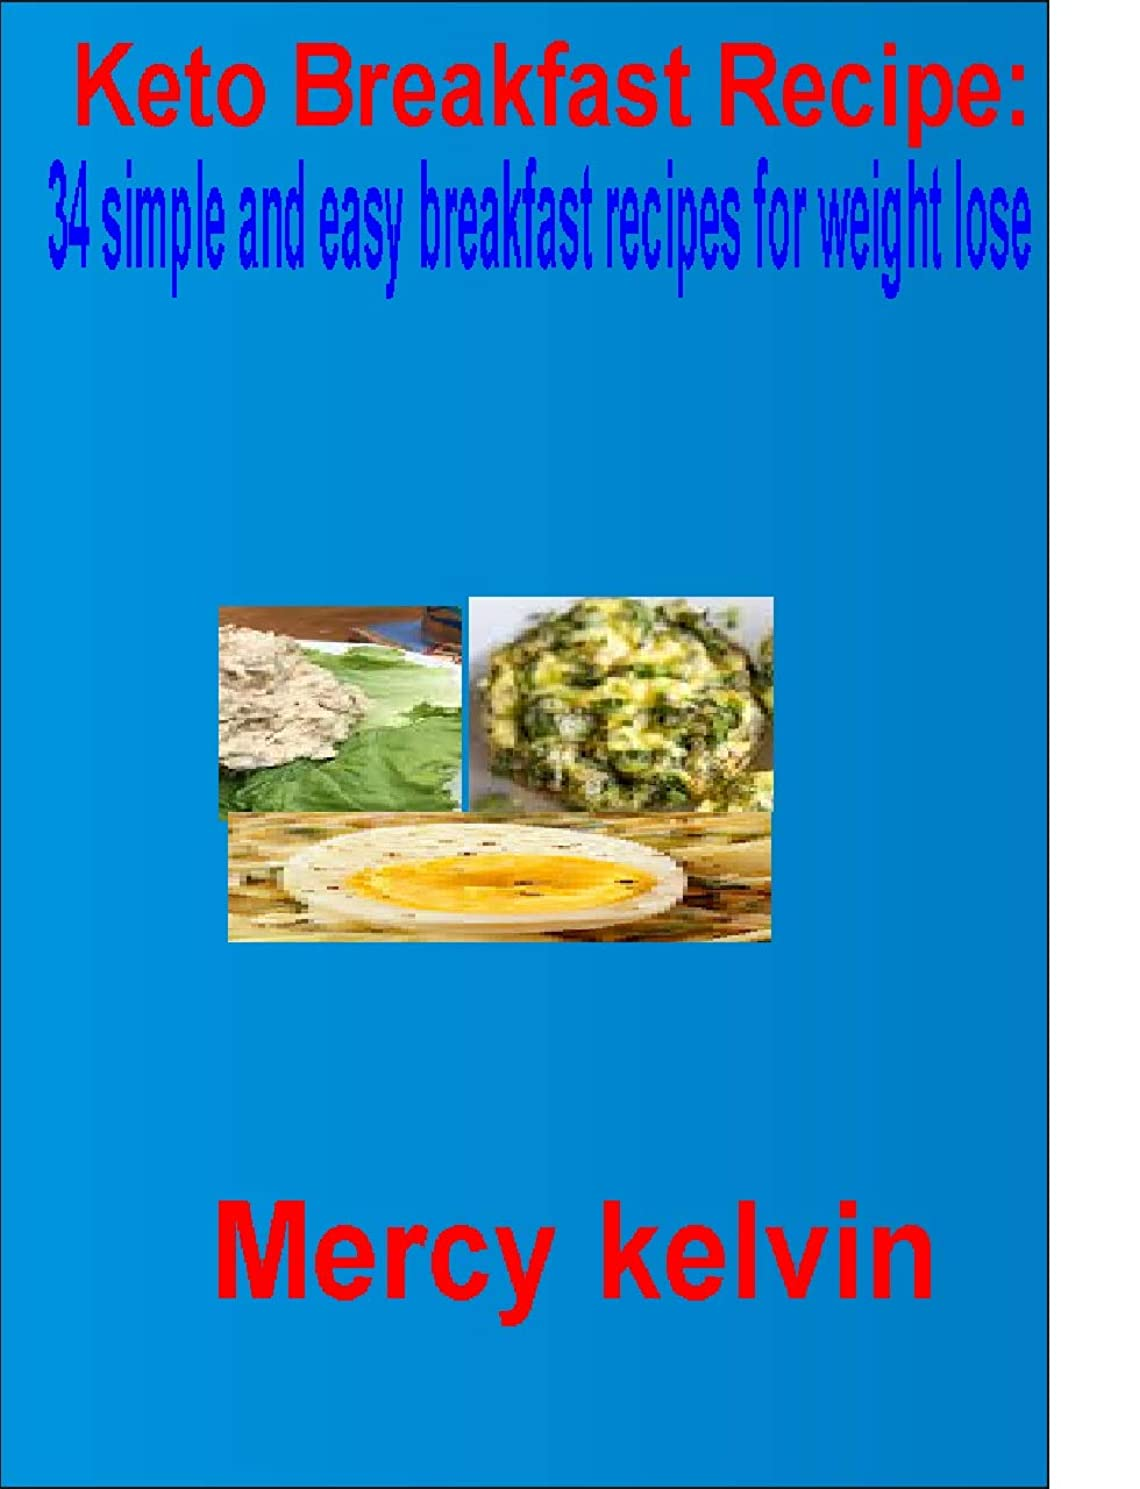 Keto Breakfast Recipe:: 34 simple and easy breakfast recipes for weight lose. (English Edition)